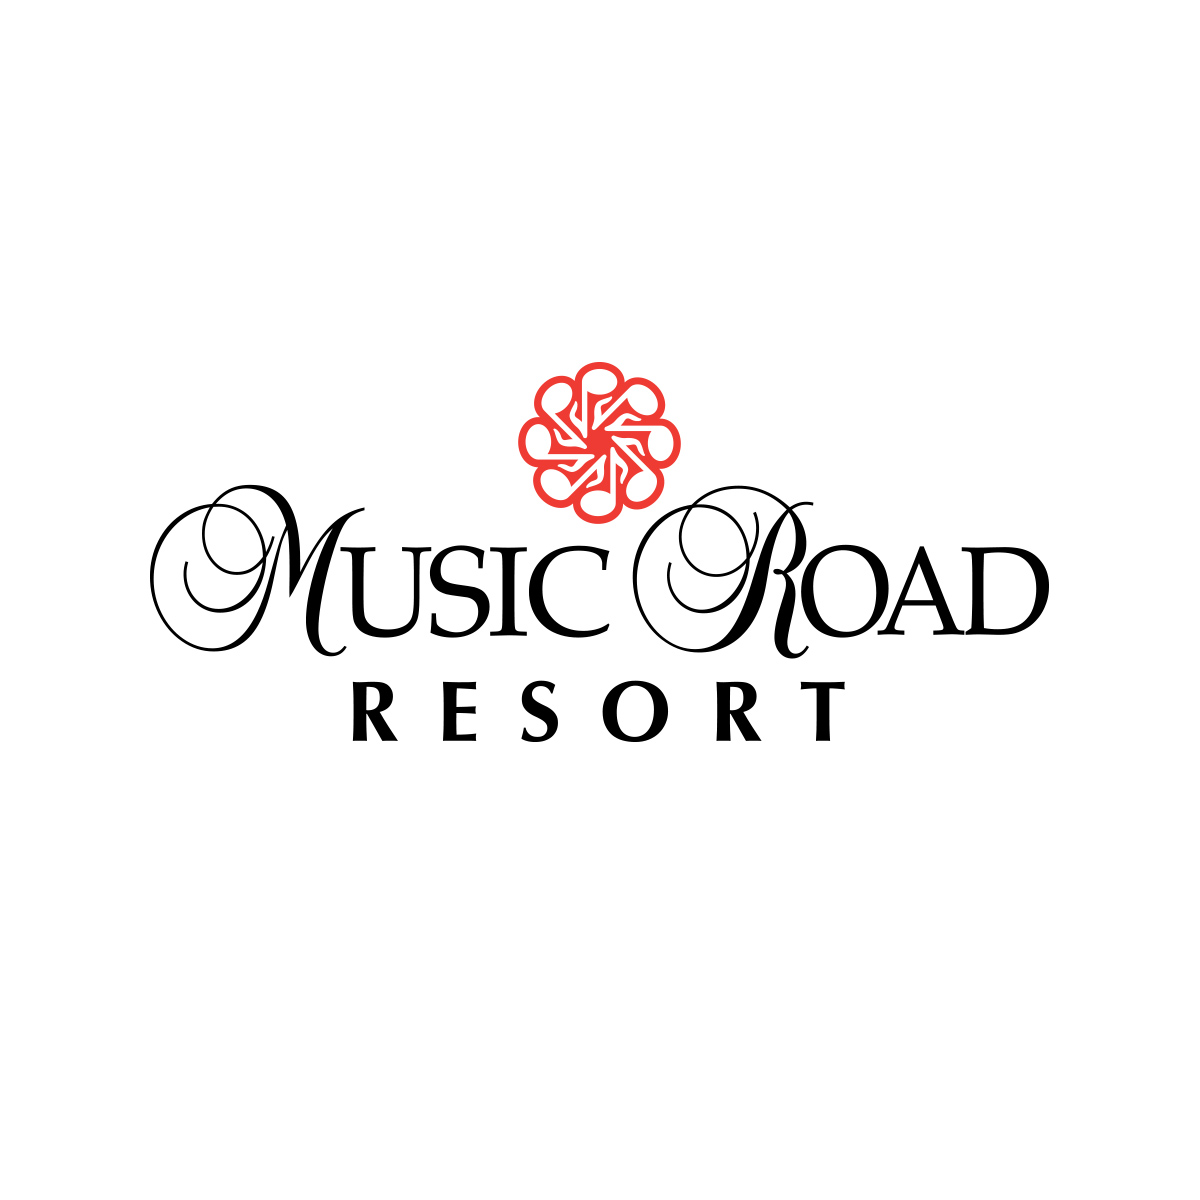 Music Road Resort 2019 SMCB Logo.jpg